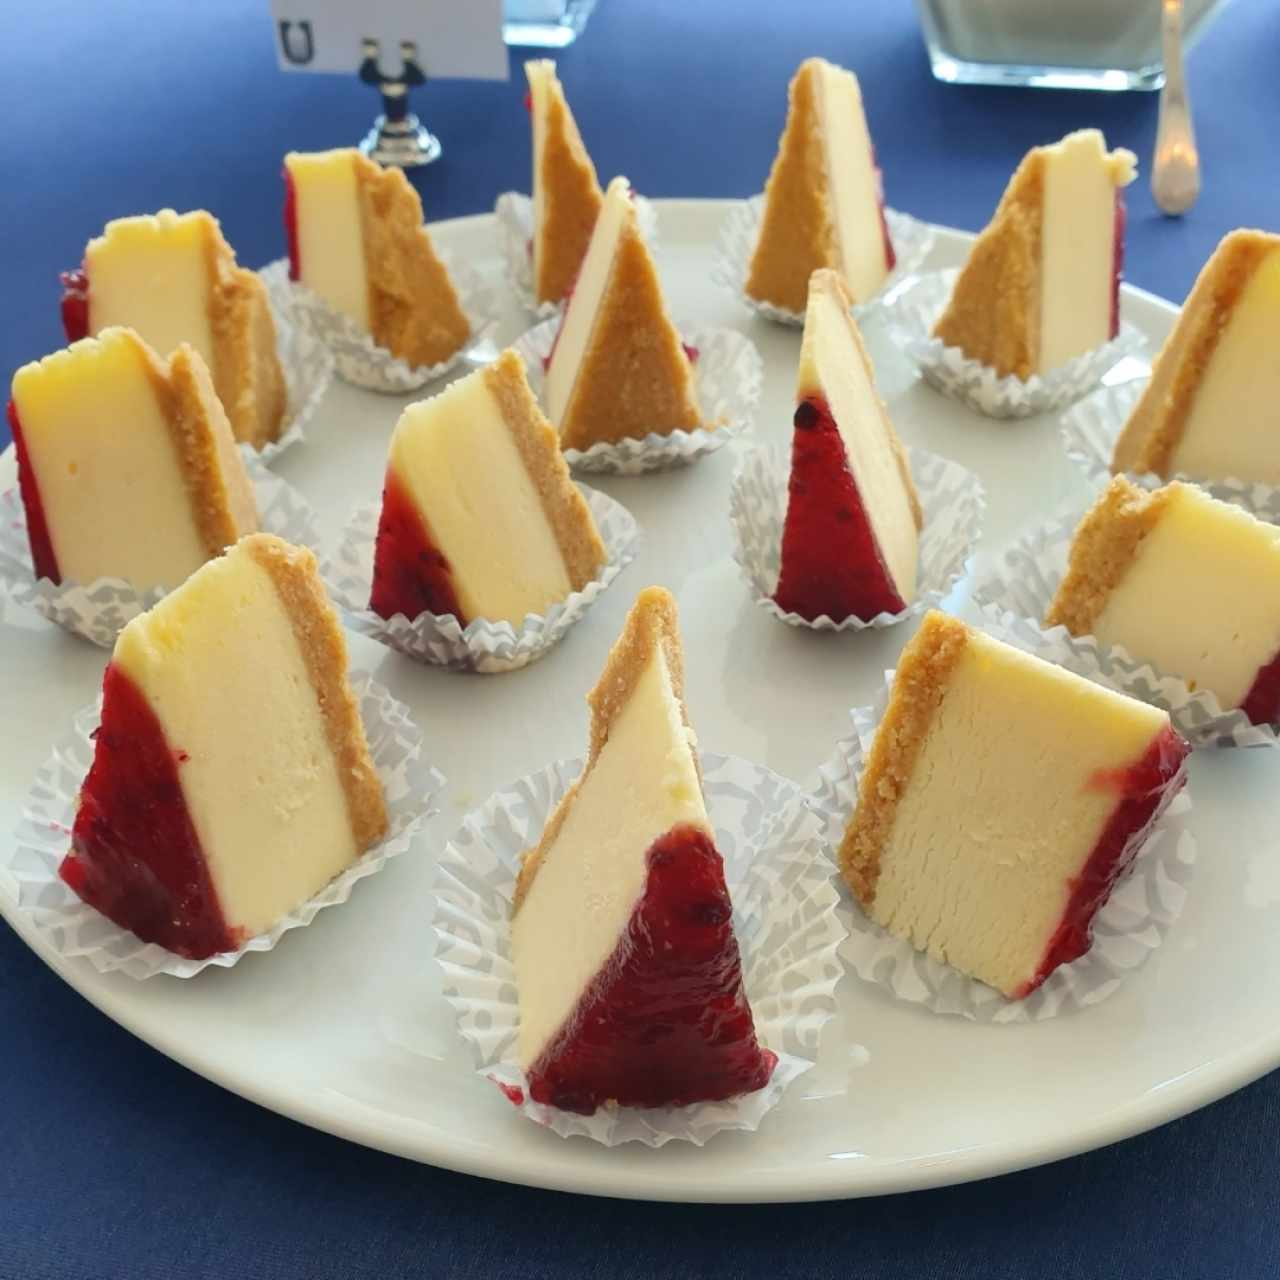 Boquitas dulces - Mini cheesecake